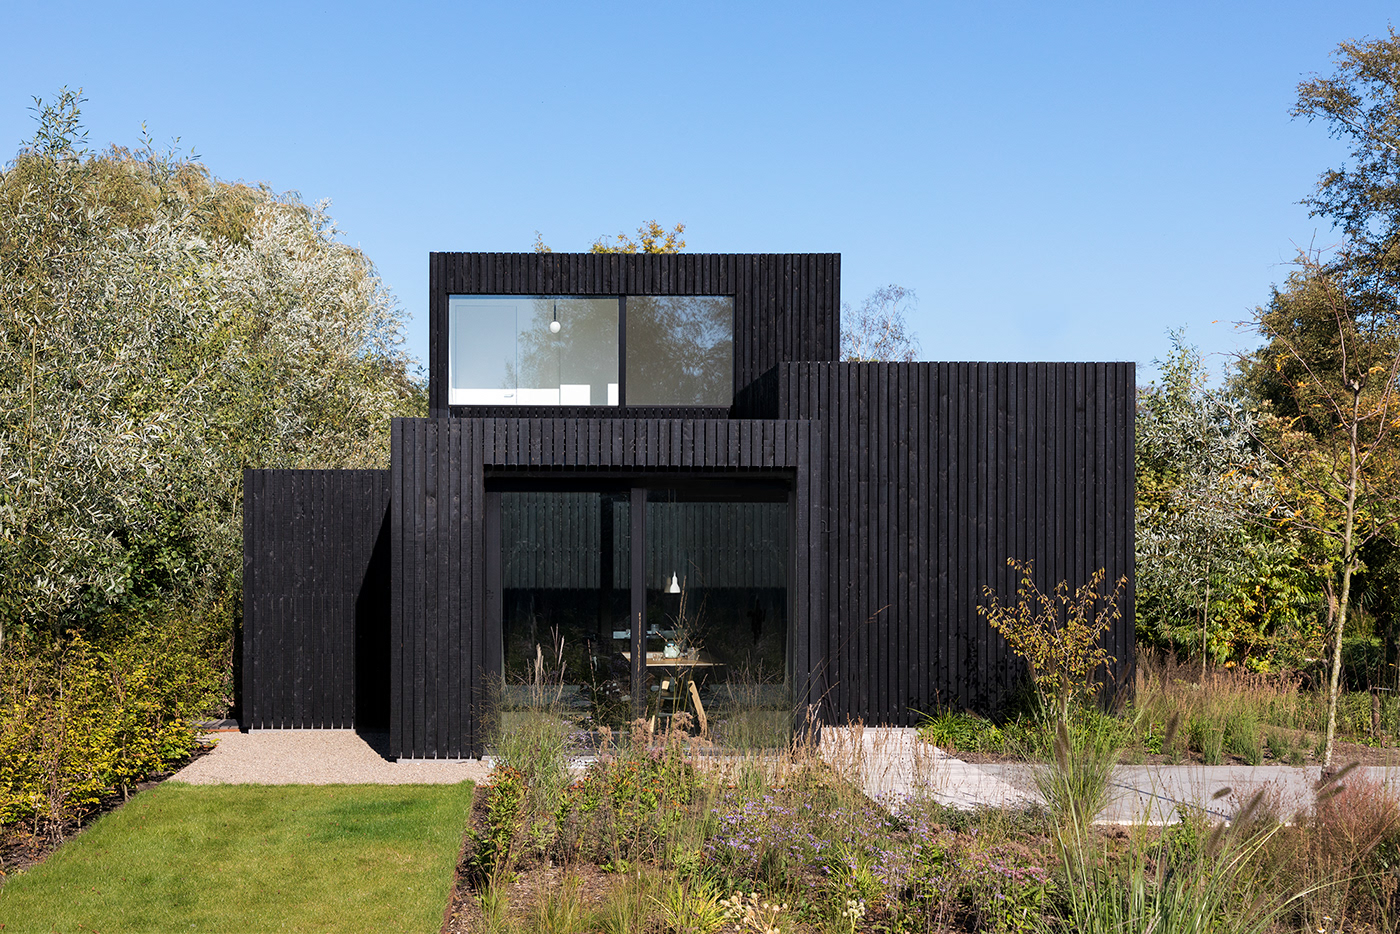 Home by i interior architects located in the netherlands